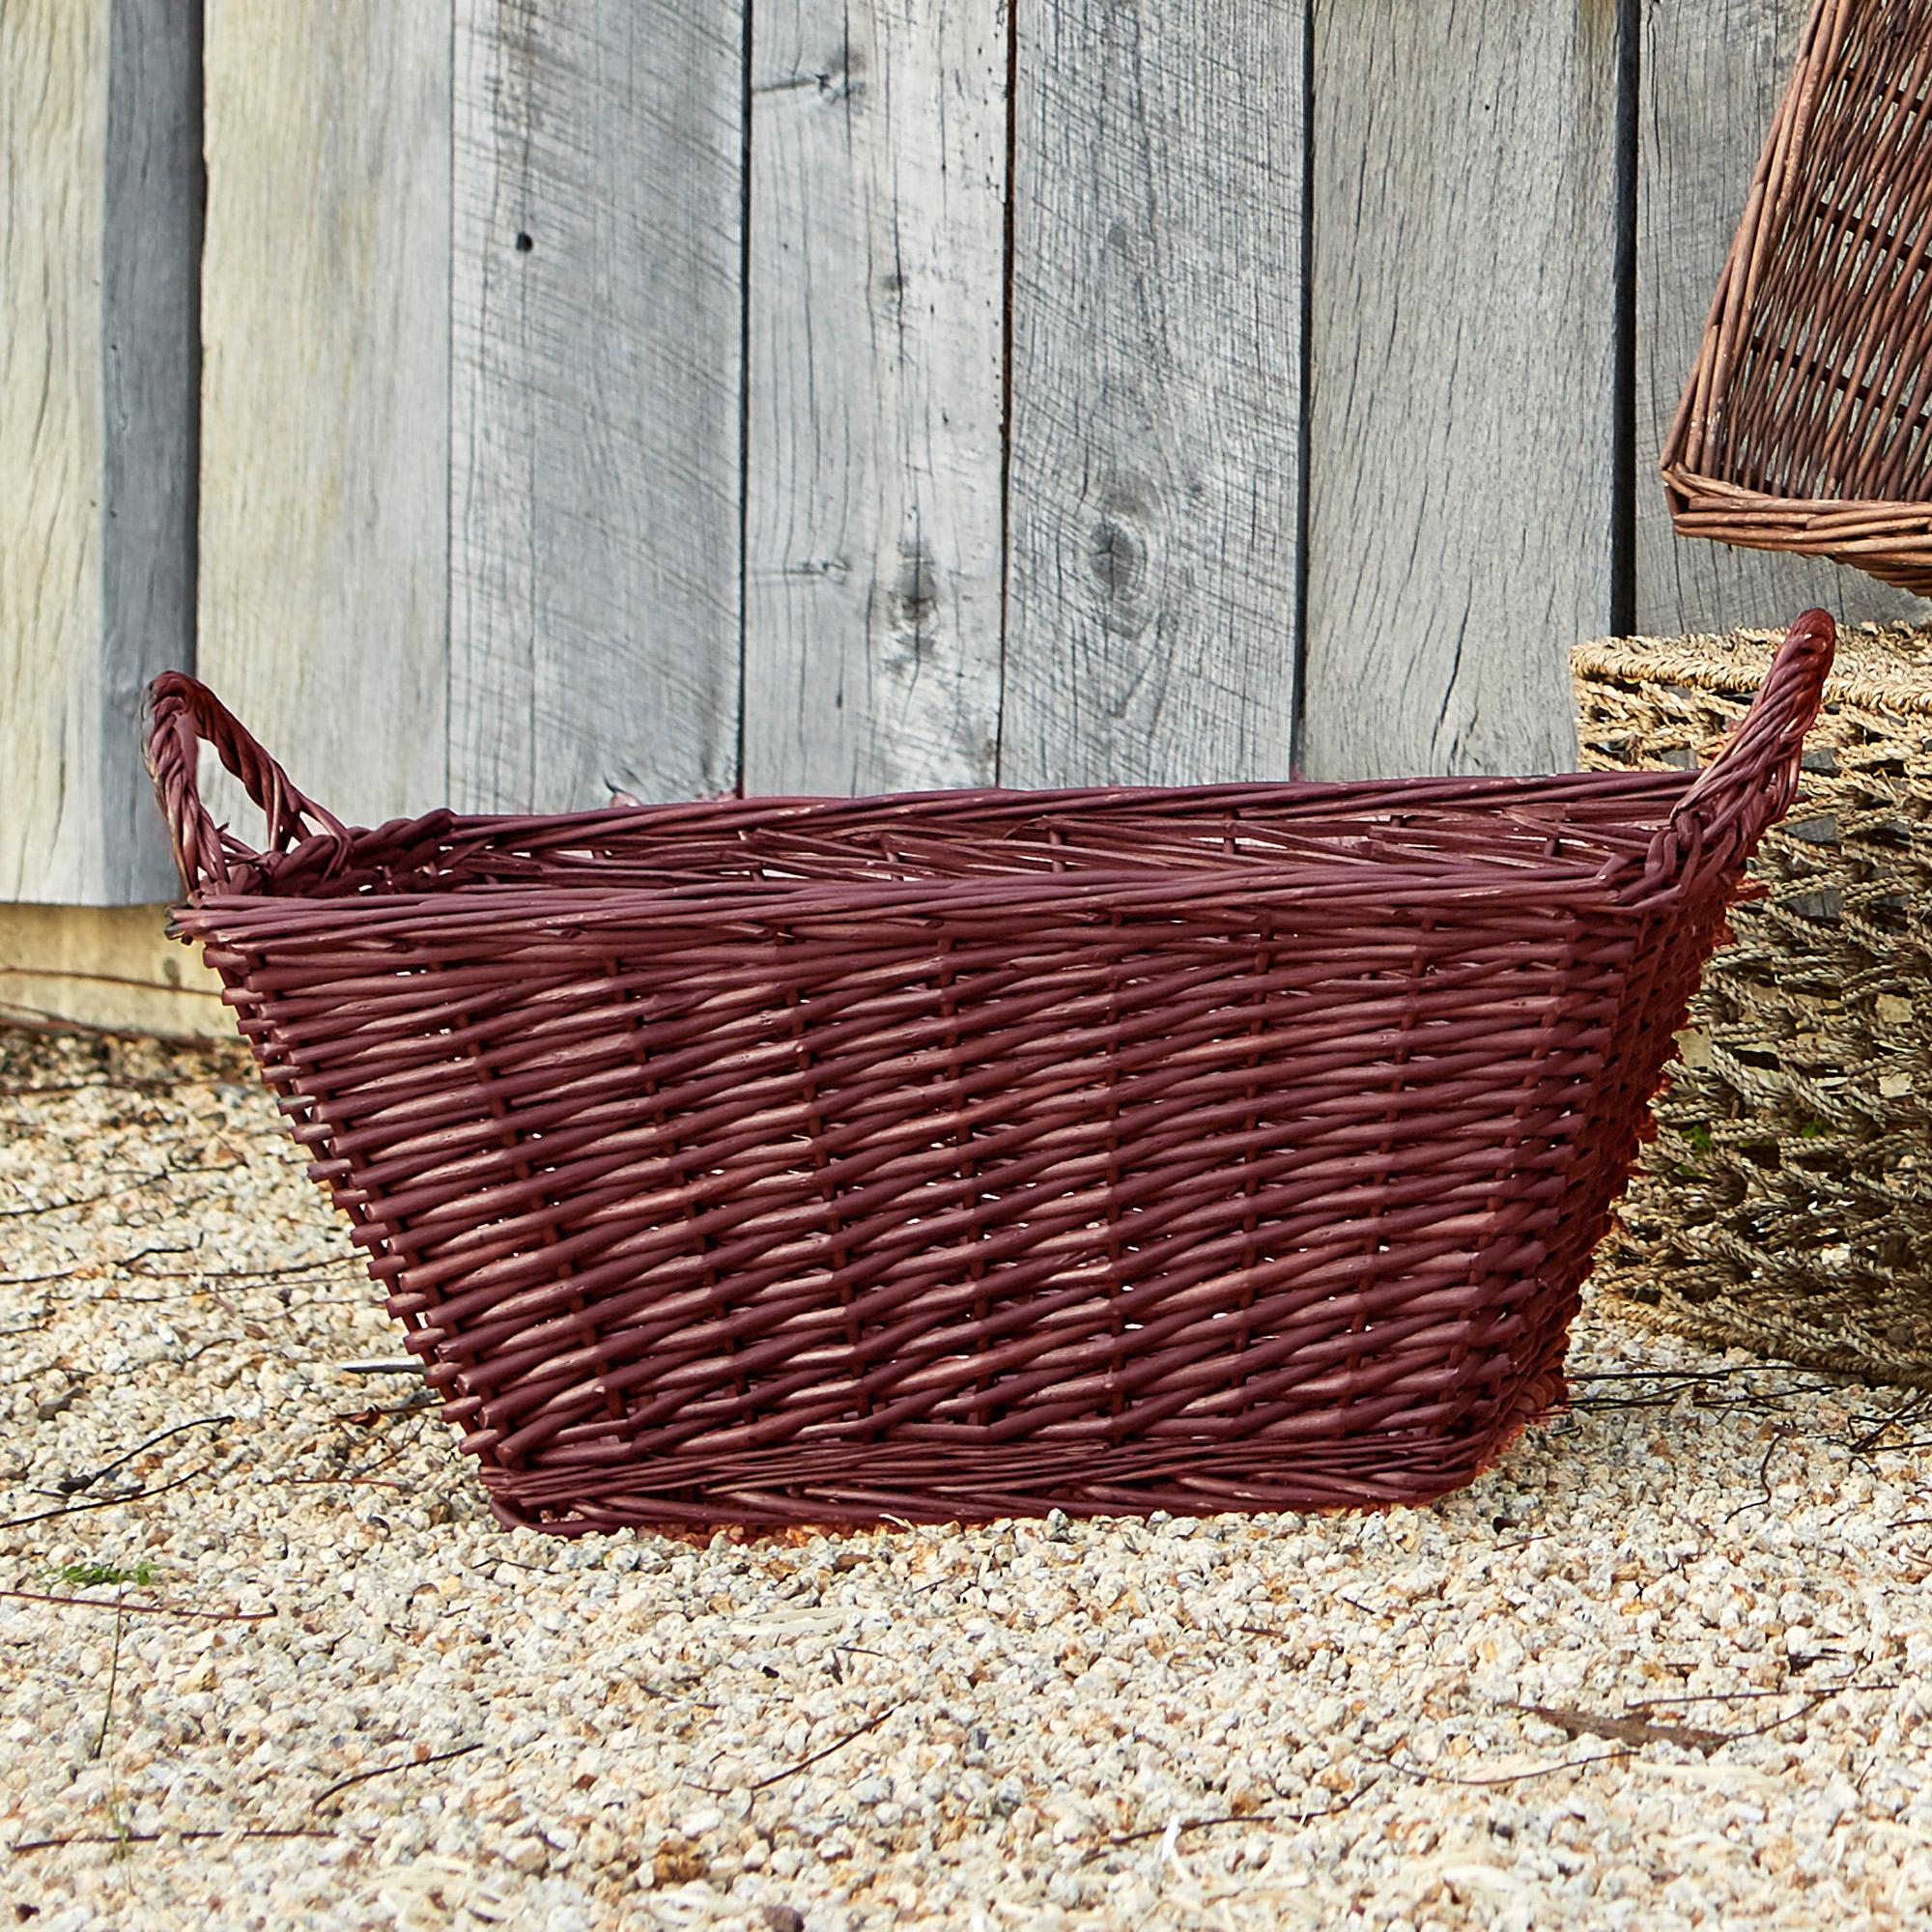 Avery Rect Utility Basket with Handles - Large 21in